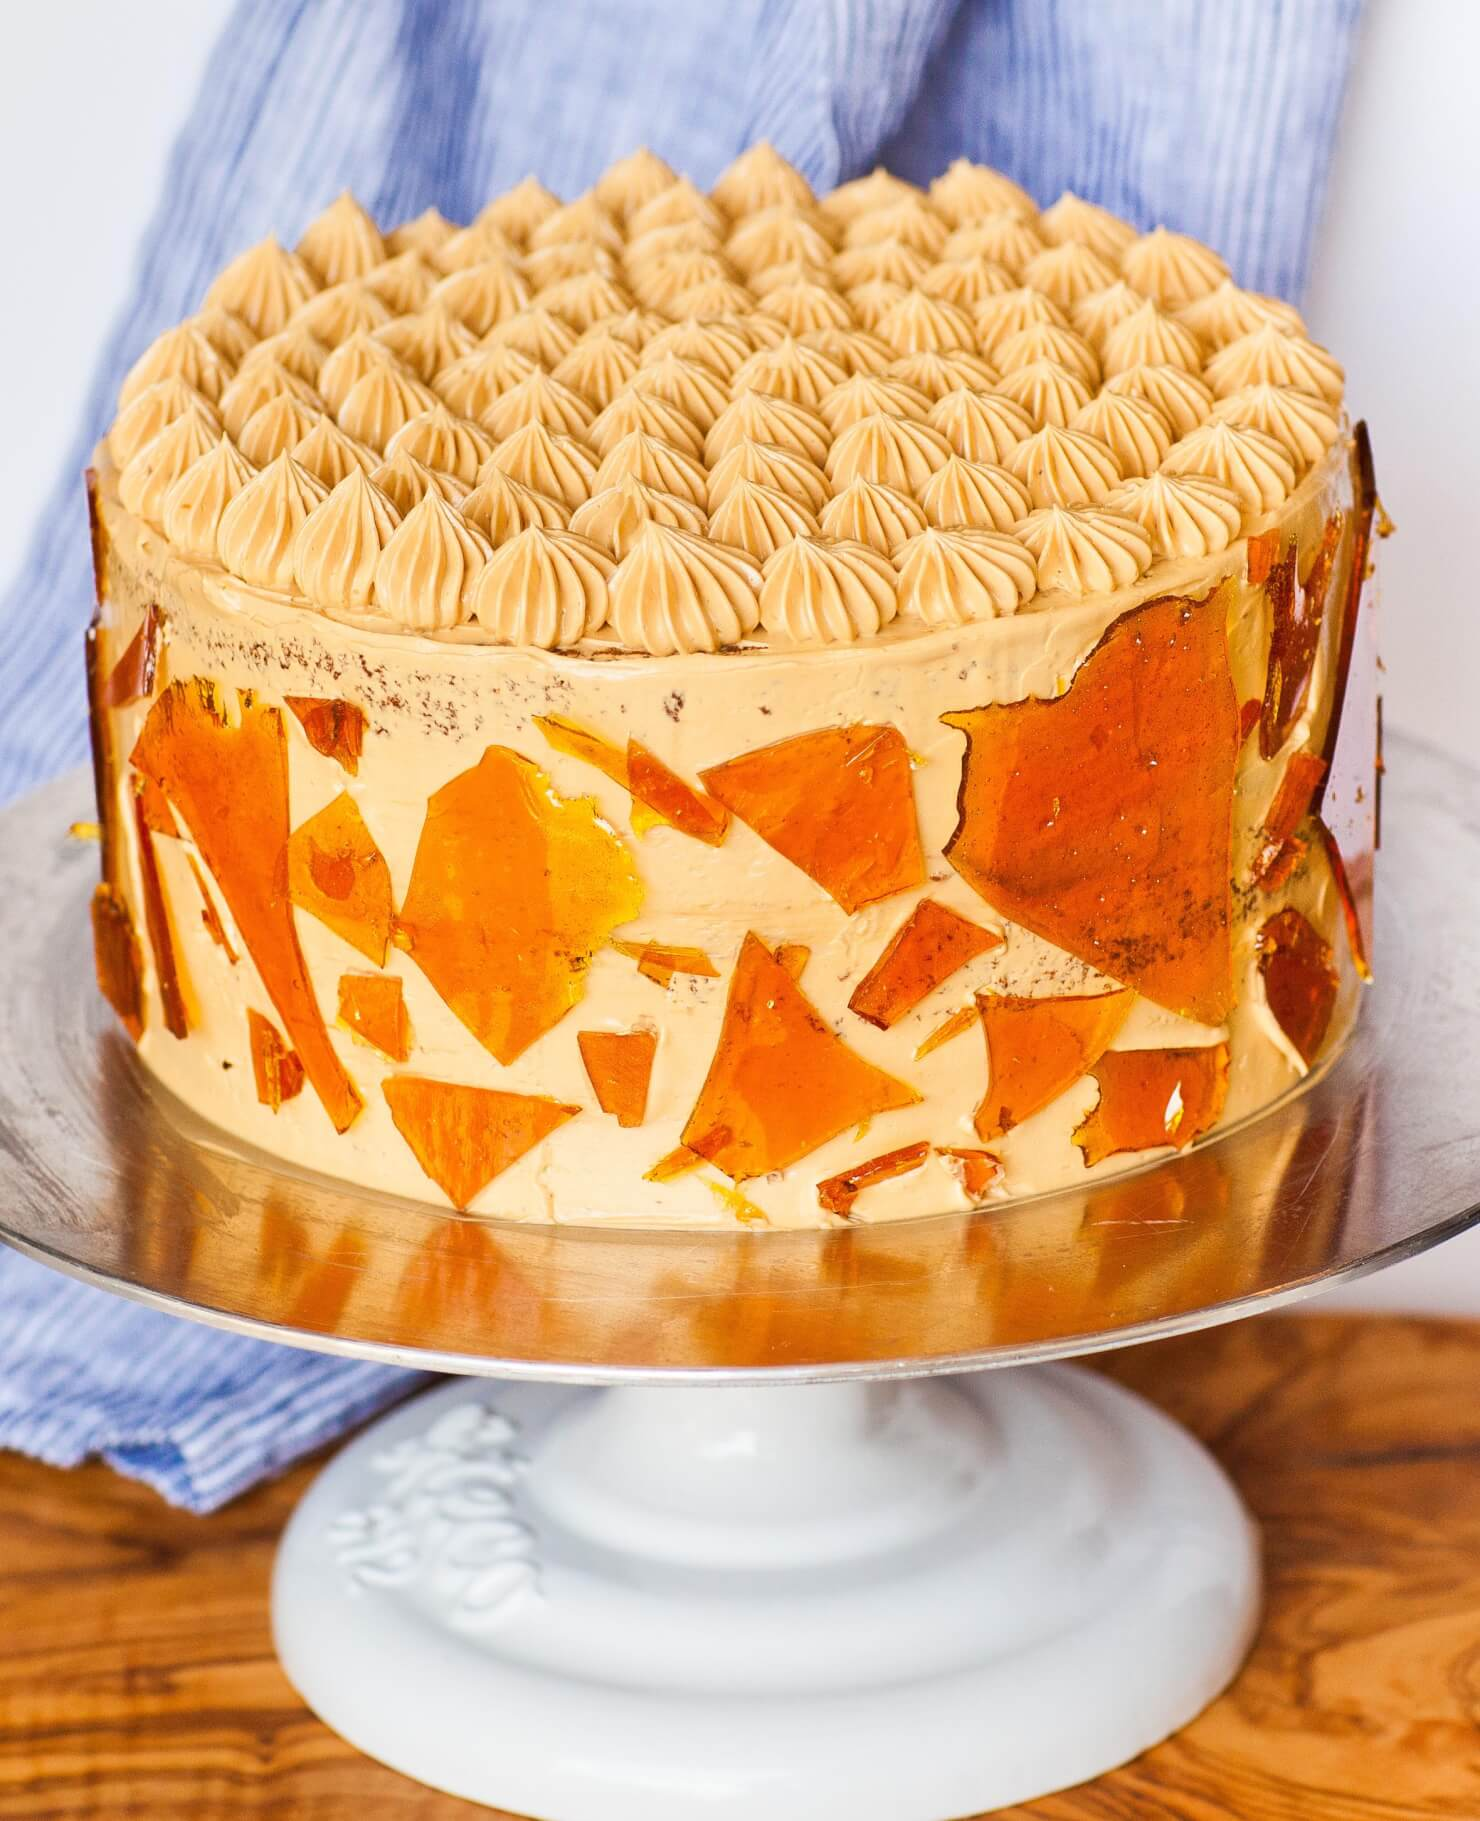 decorated dulce de leche cake